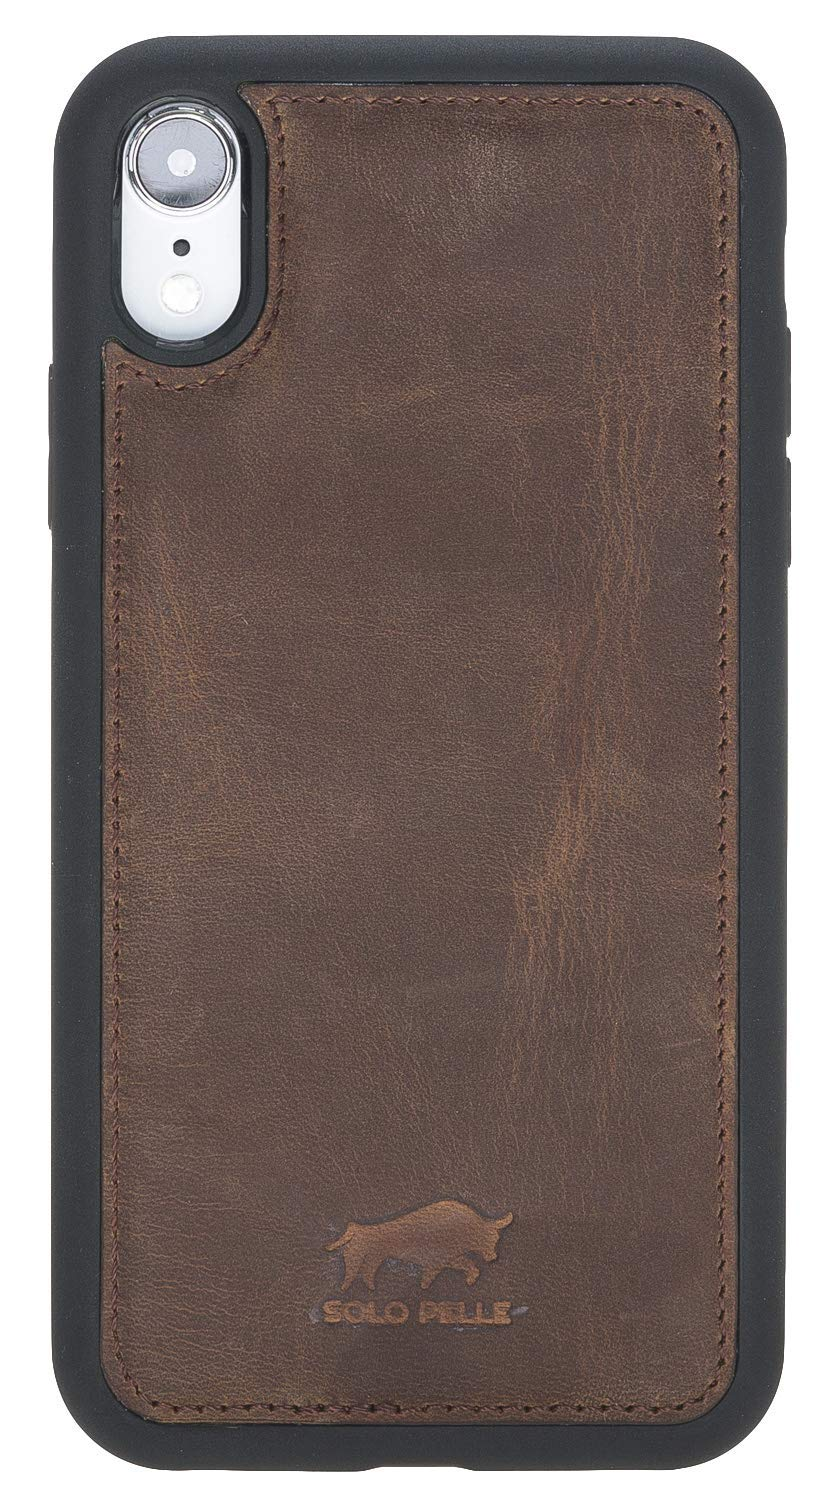 "iPhone XR iPhone ""Stanford"" Leder Hülle Tasche Lederhülle Ledertasche Backcover in Vintage Braun"